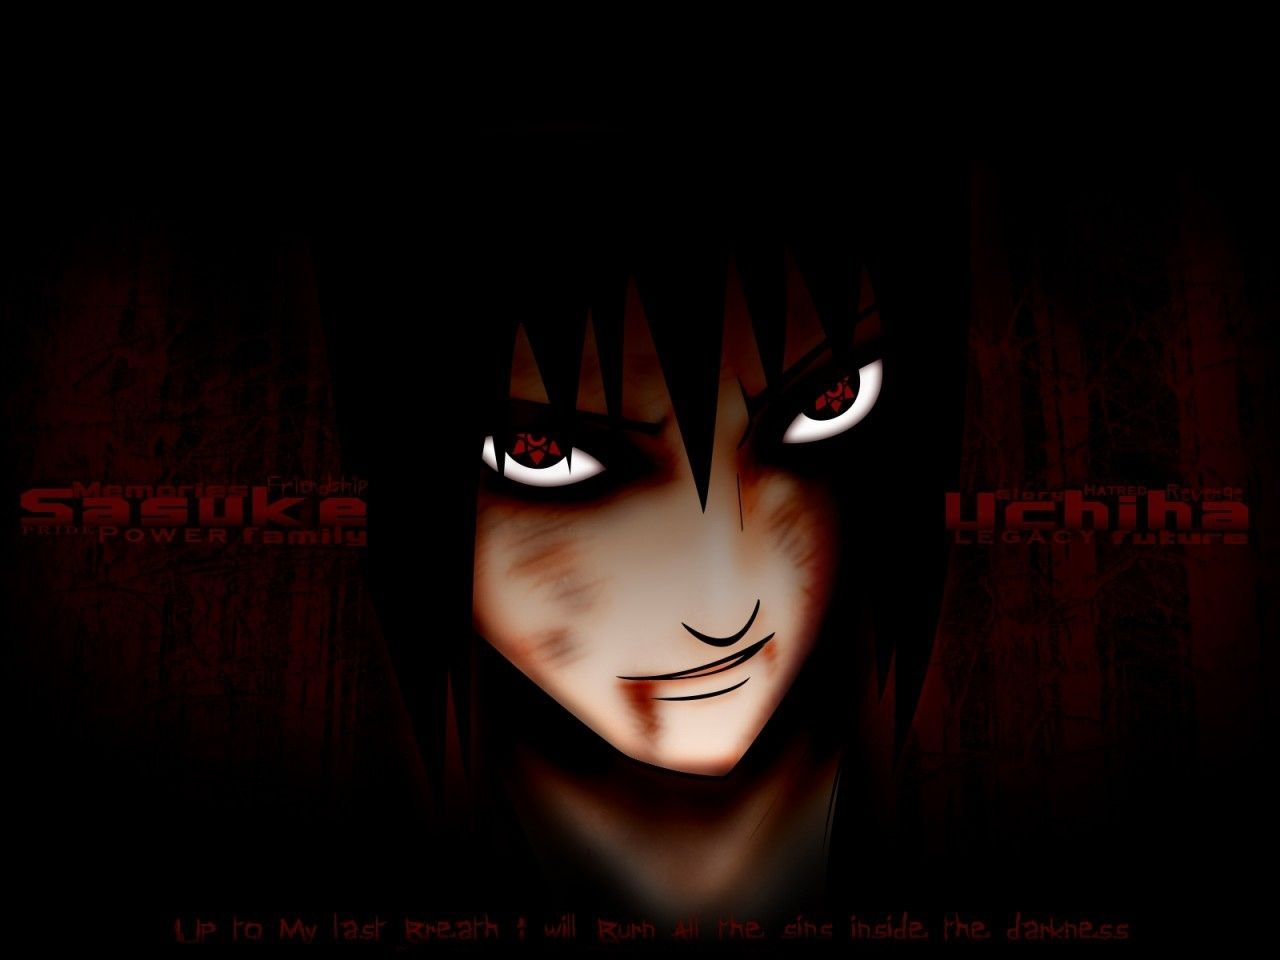 Sharingan Images SharinganUchiha Sasuke HD Wallpaper And Background Photos